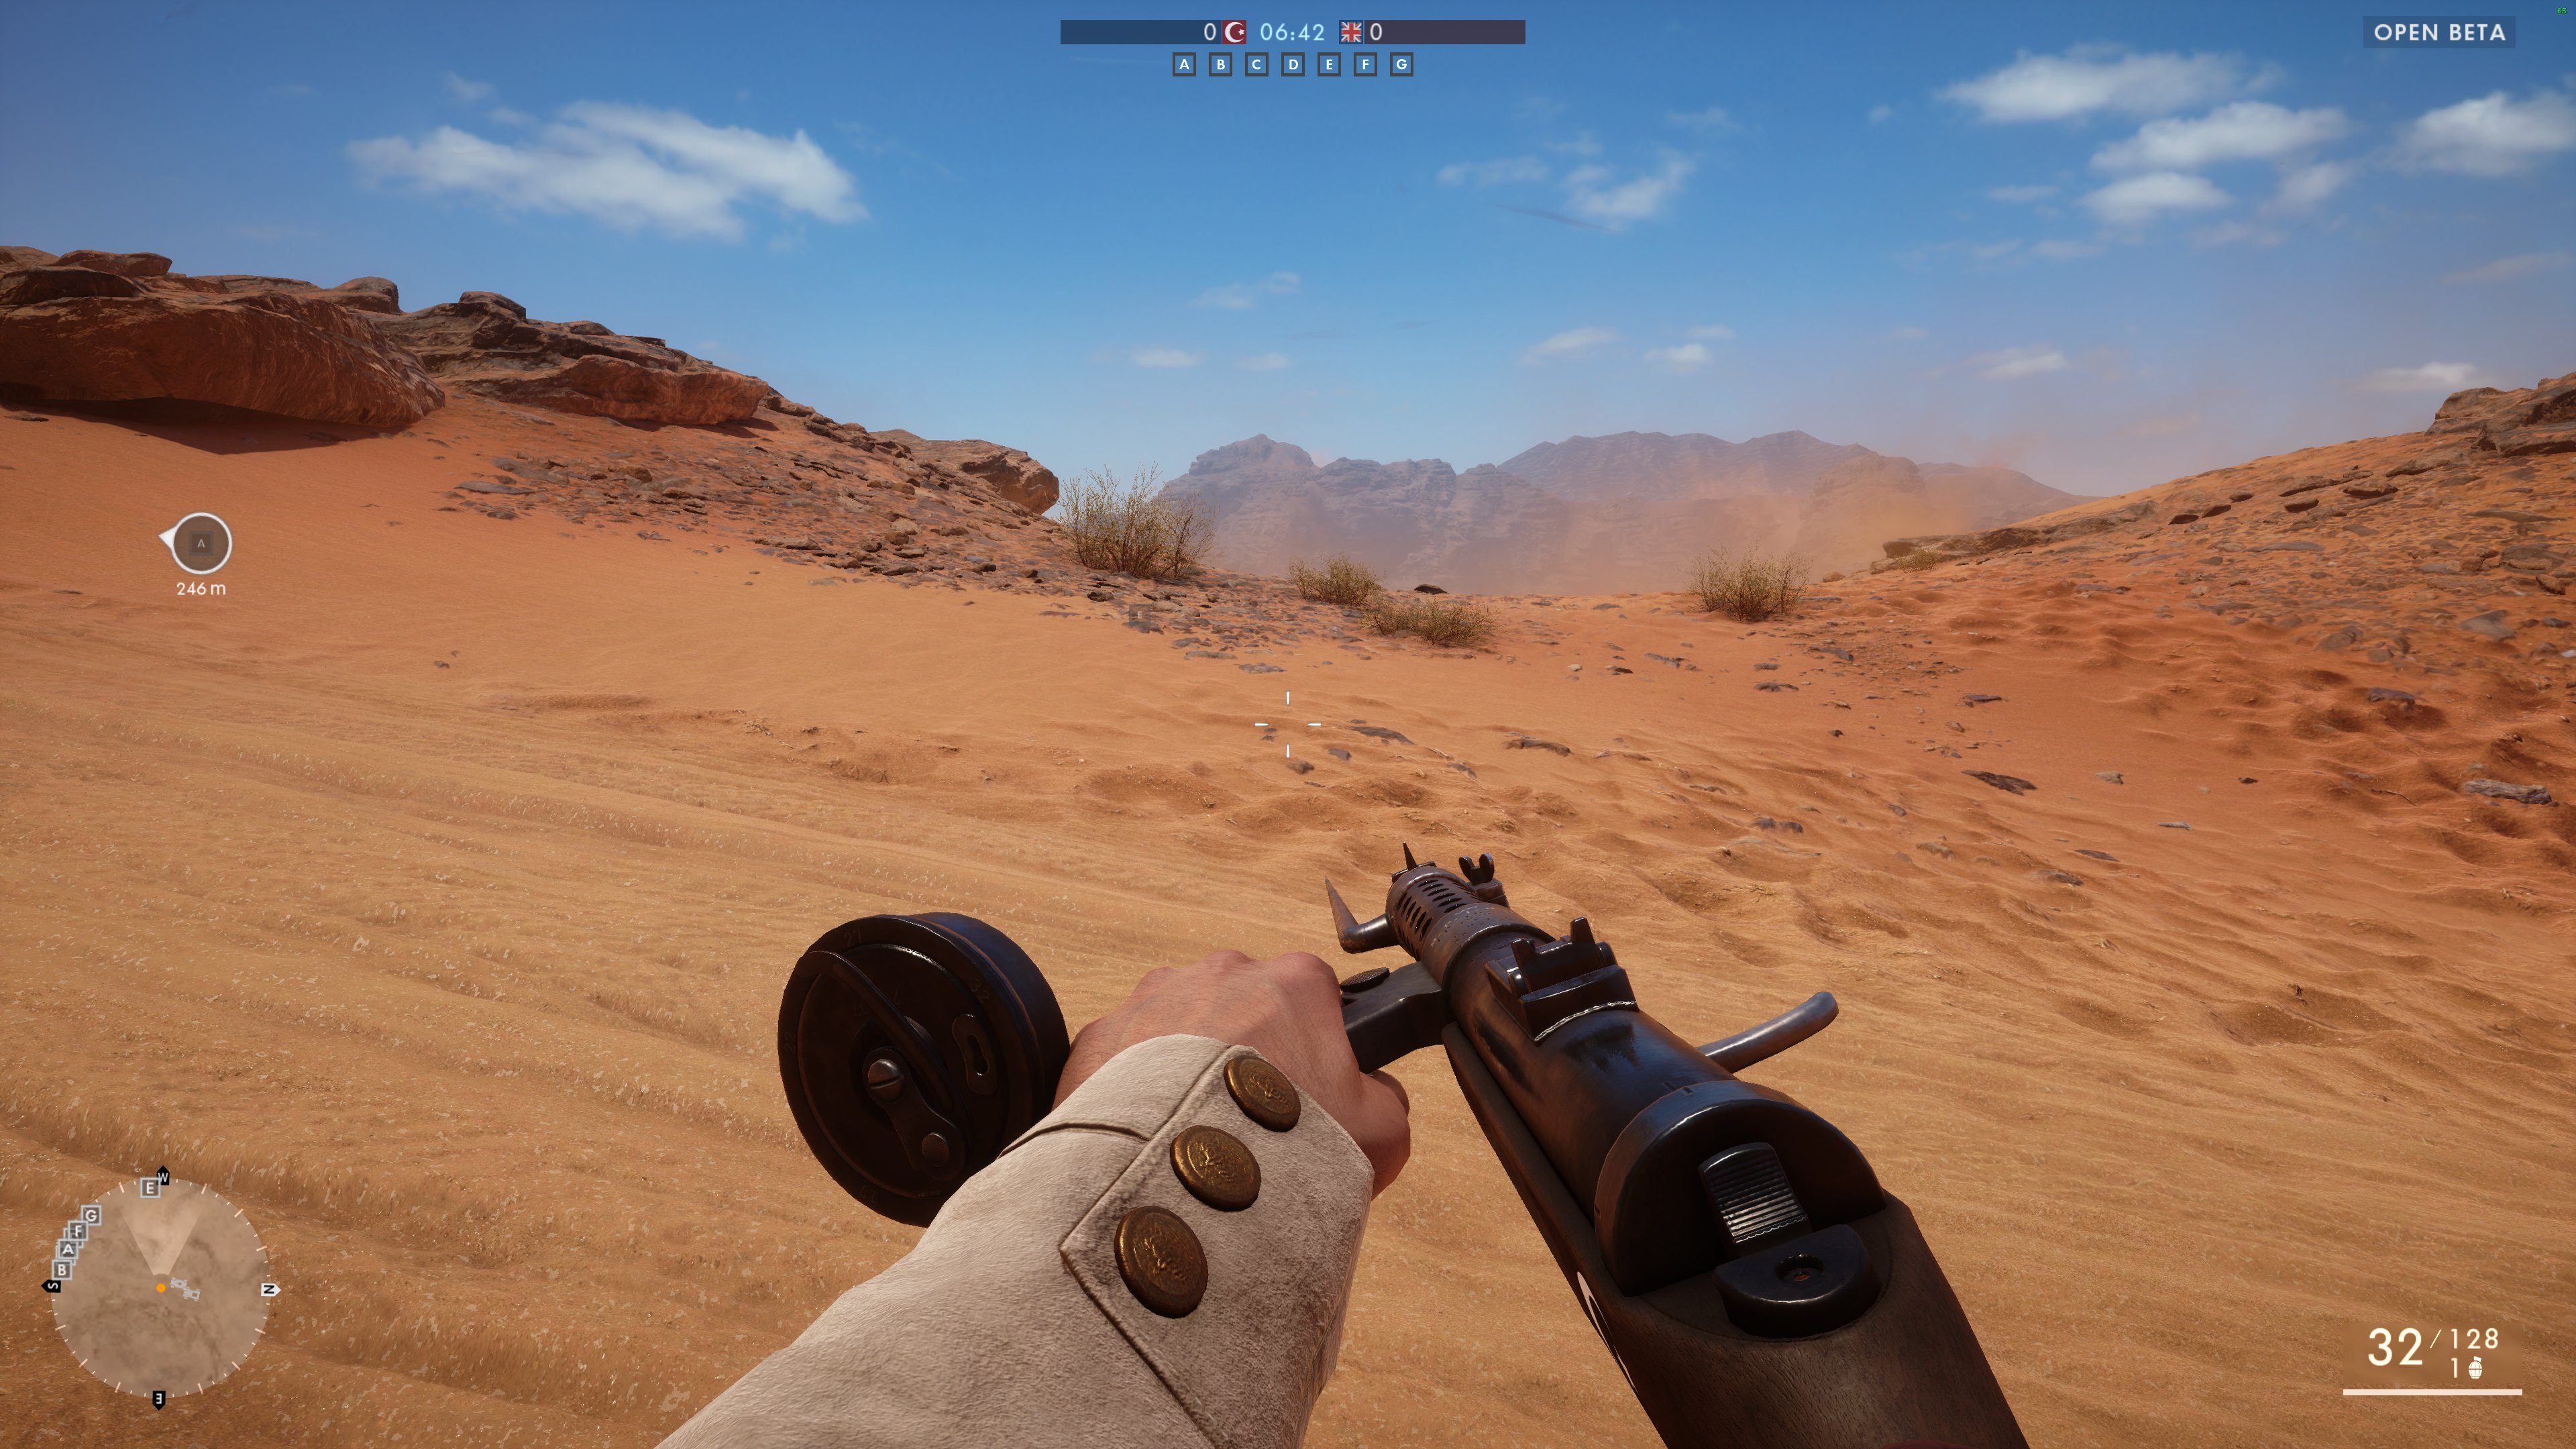 how to change resolution on bf1